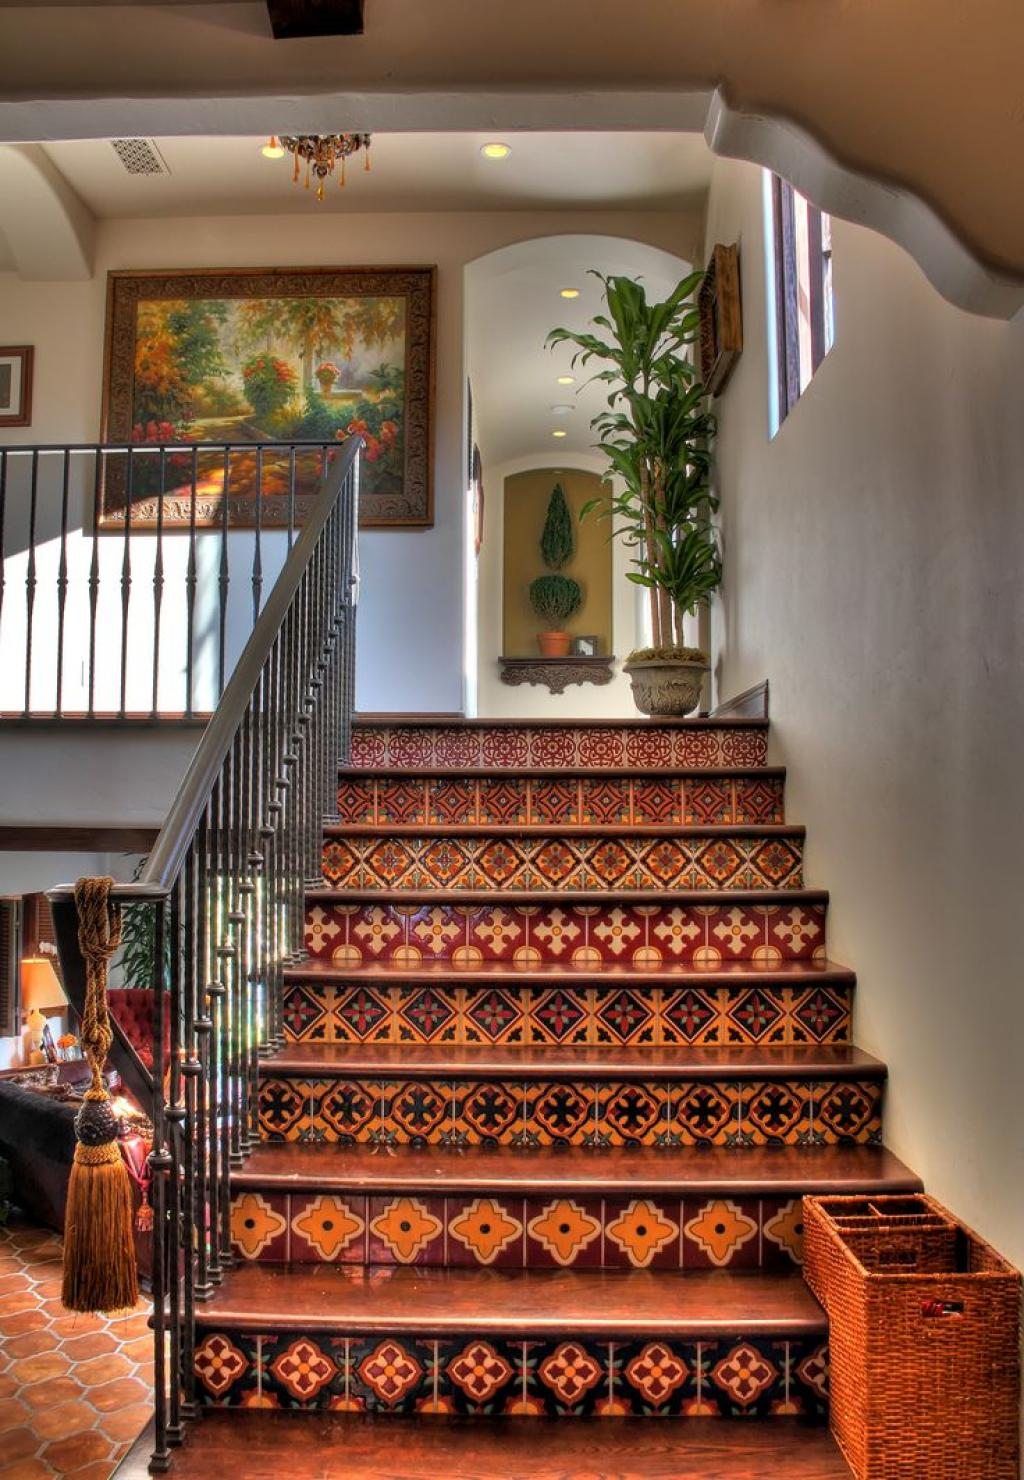 Mediterranean spanish style homes interior stairs decor for Home decoration photos